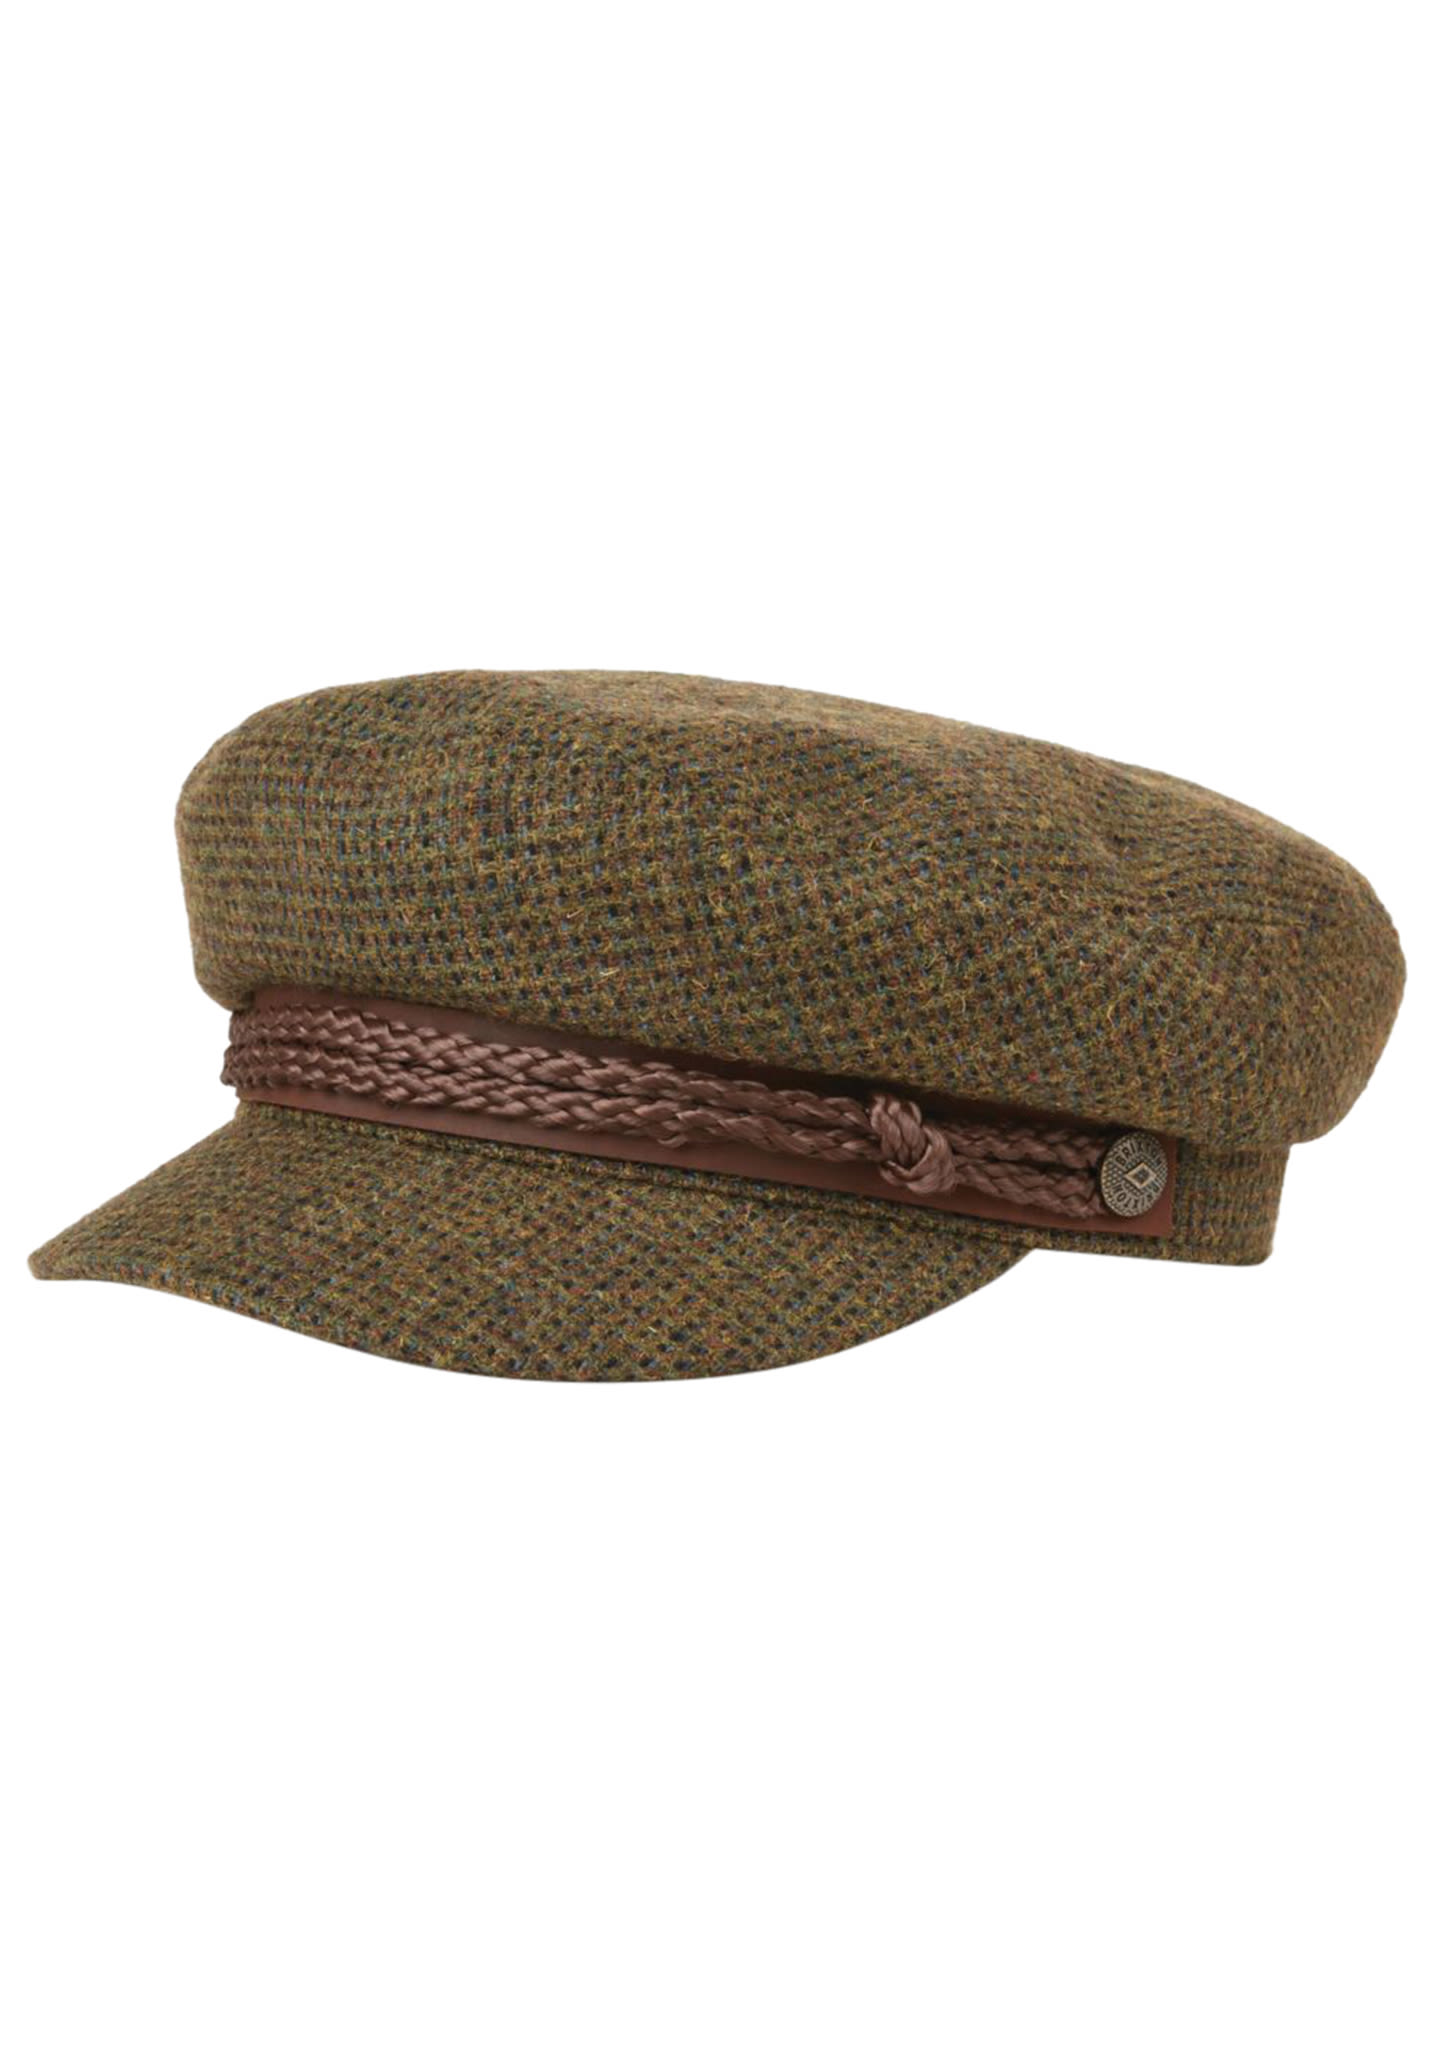 BRIXTON Fiddler - Cap - Brown - Planet Sports 487f2a51d0ad